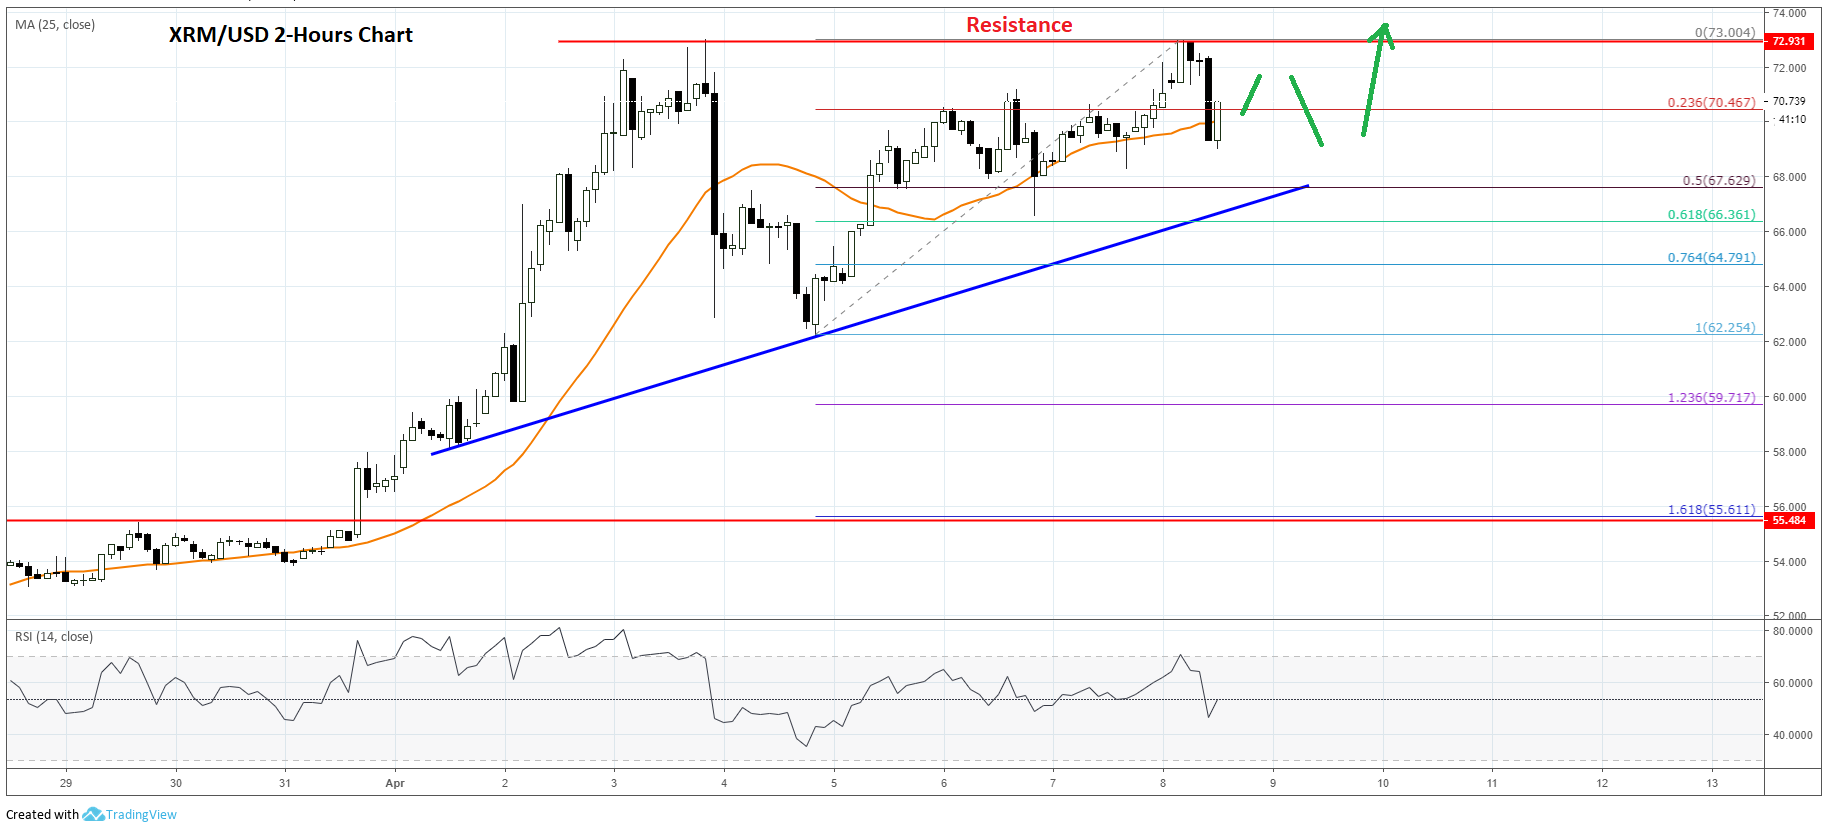 Monero (XMR) Price Prediction: Further Gains Above $75 Seems Likely